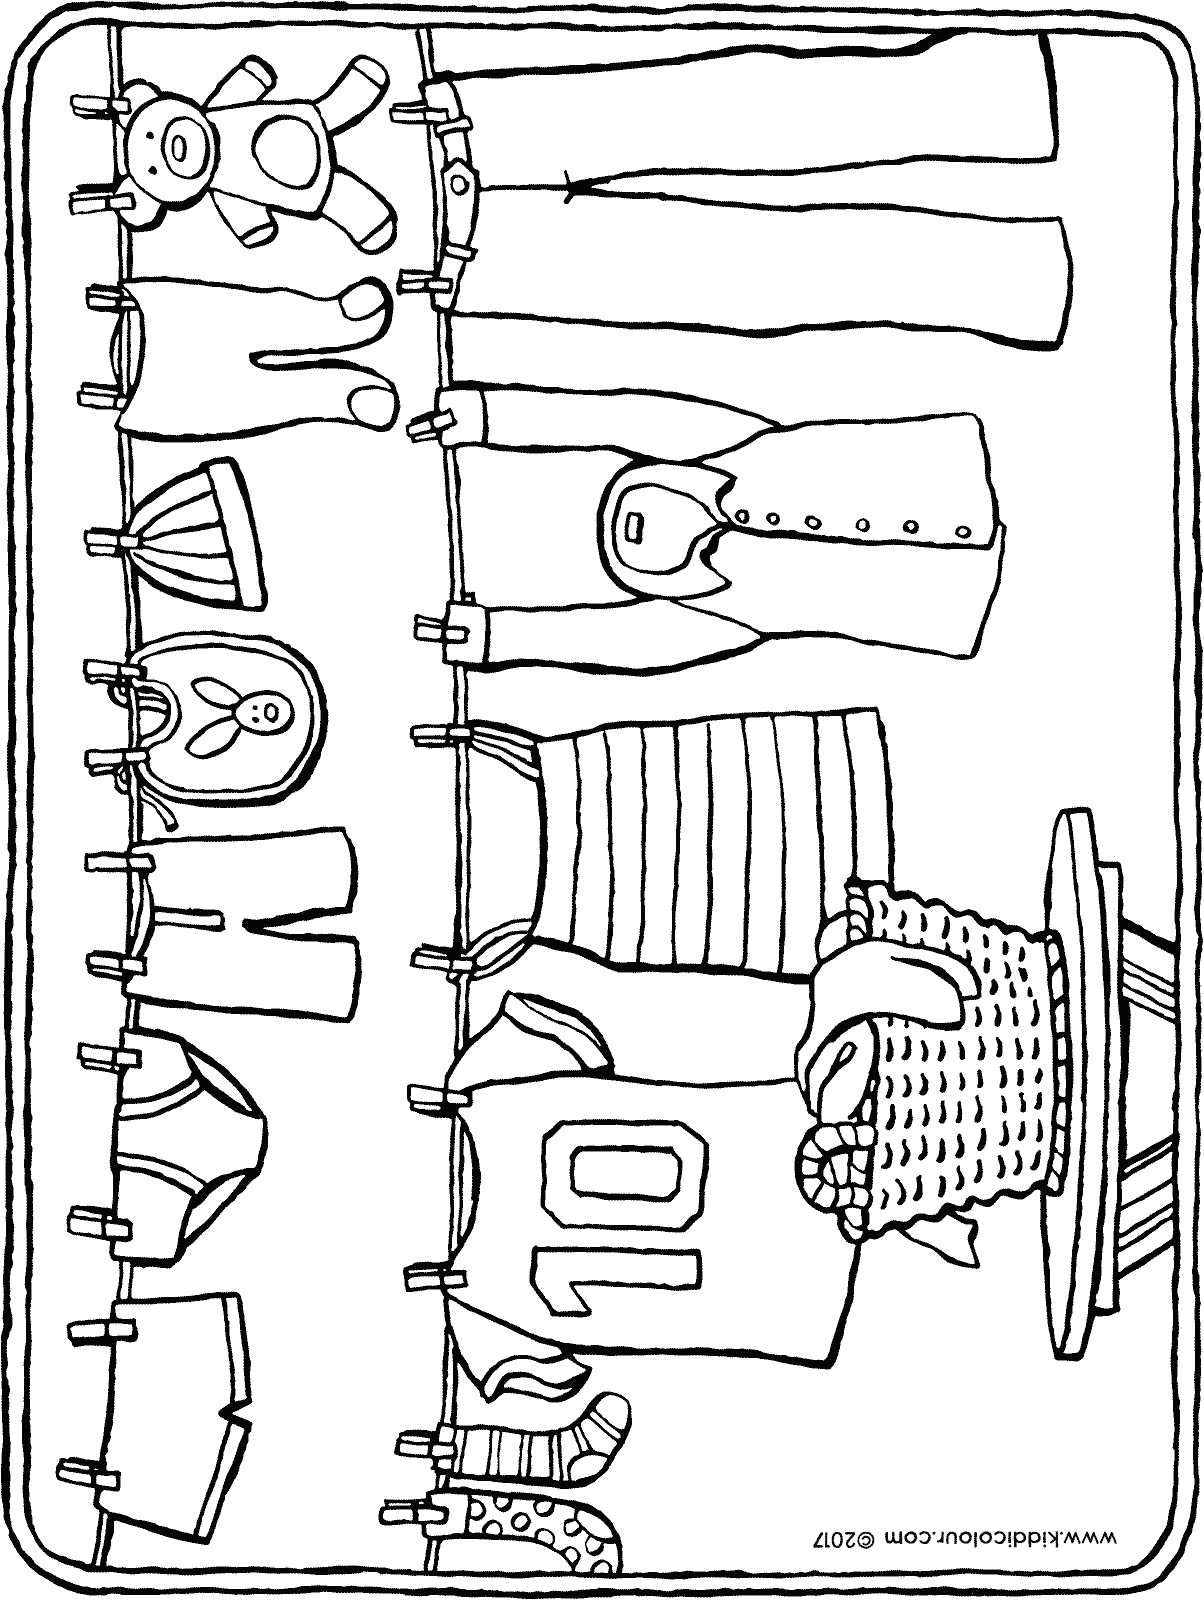 washing line colouring page drawing picture 01H